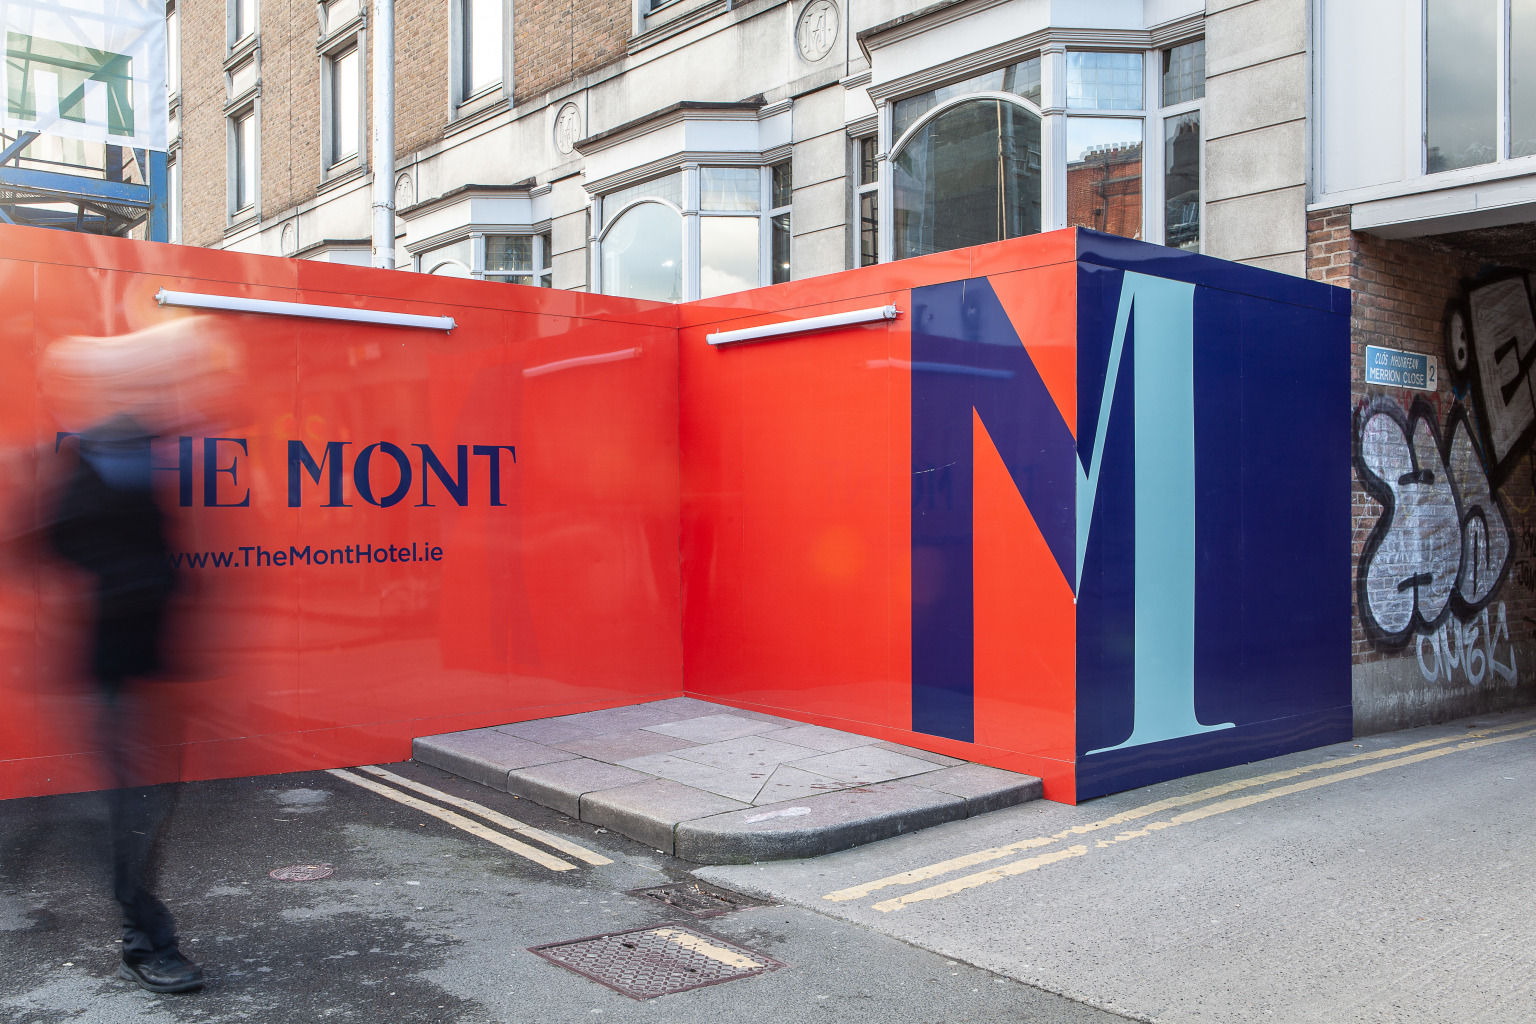 The Mont Hotel